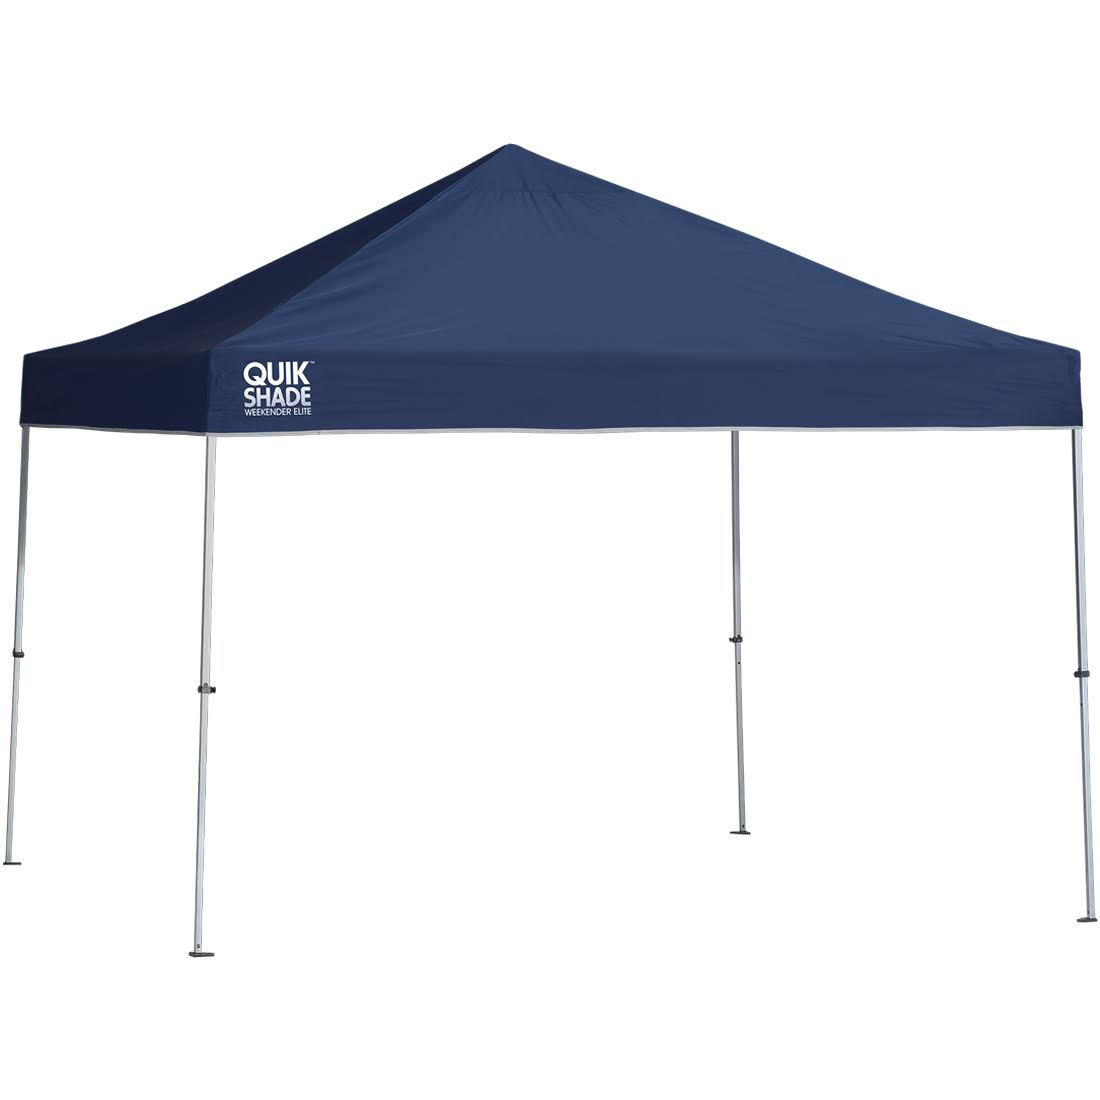 Quik Shade Weekender Elite Straight Leg Instant Canopy - Navy Blue, 10' X 10'